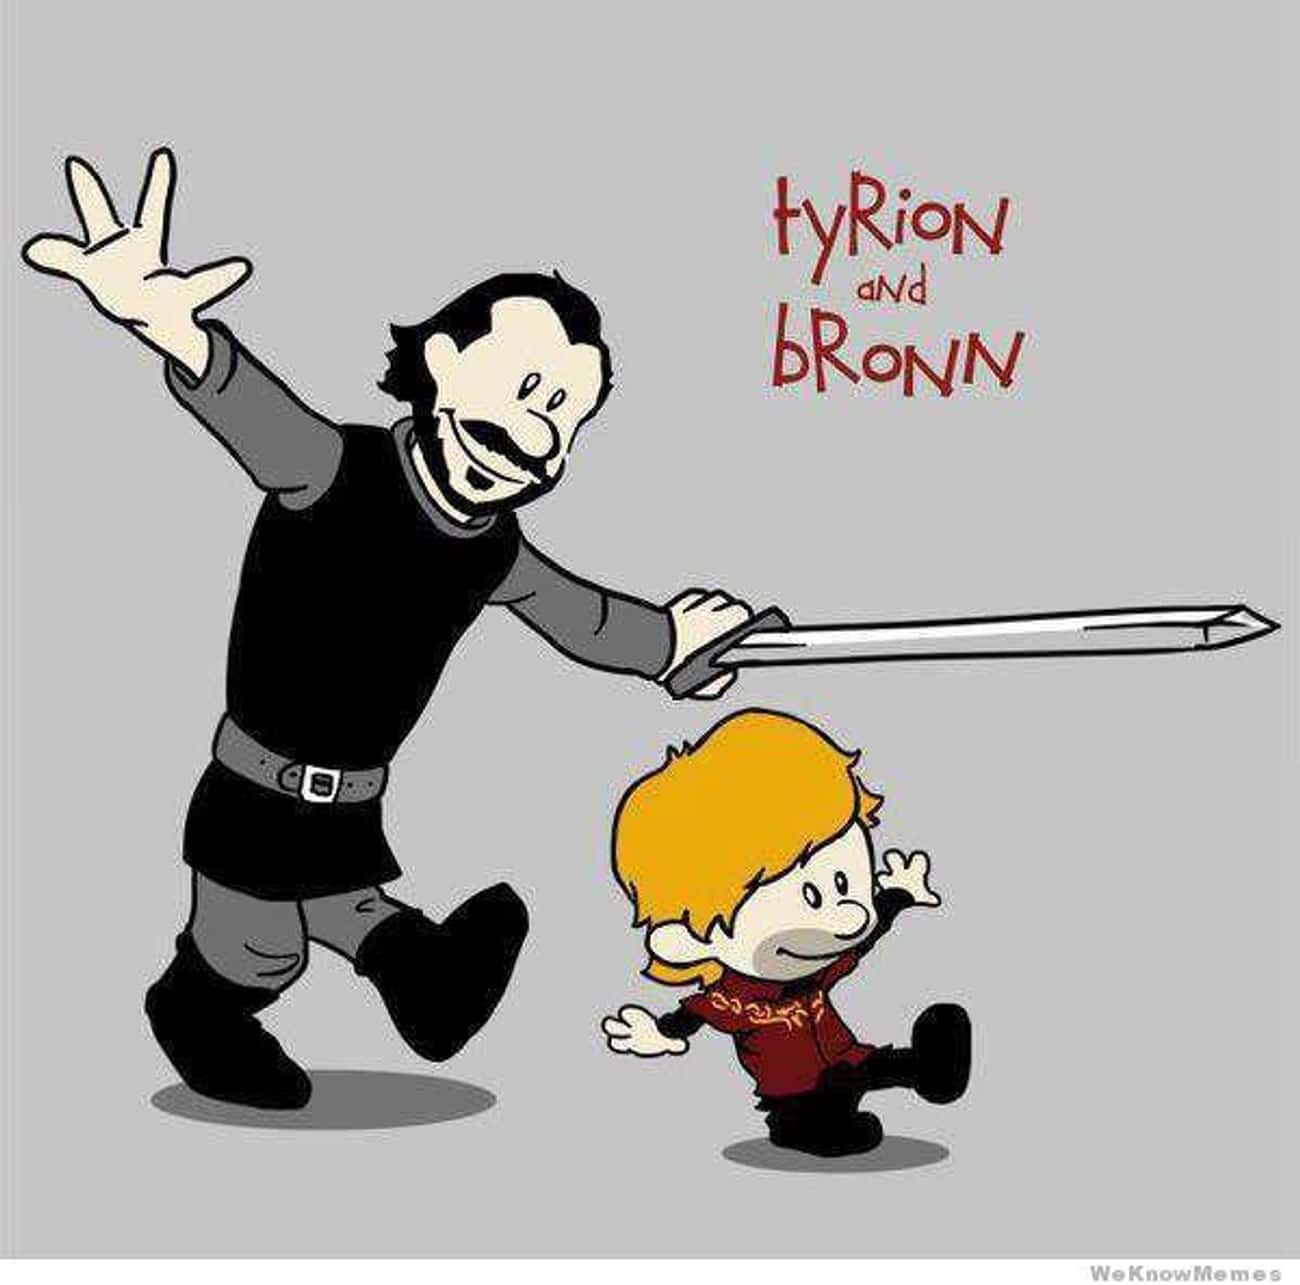 Calvin & Hobbes is listed (or ranked) 3 on the list 40+ Epic Game of Thrones Mashups You Didn't Know You Needed